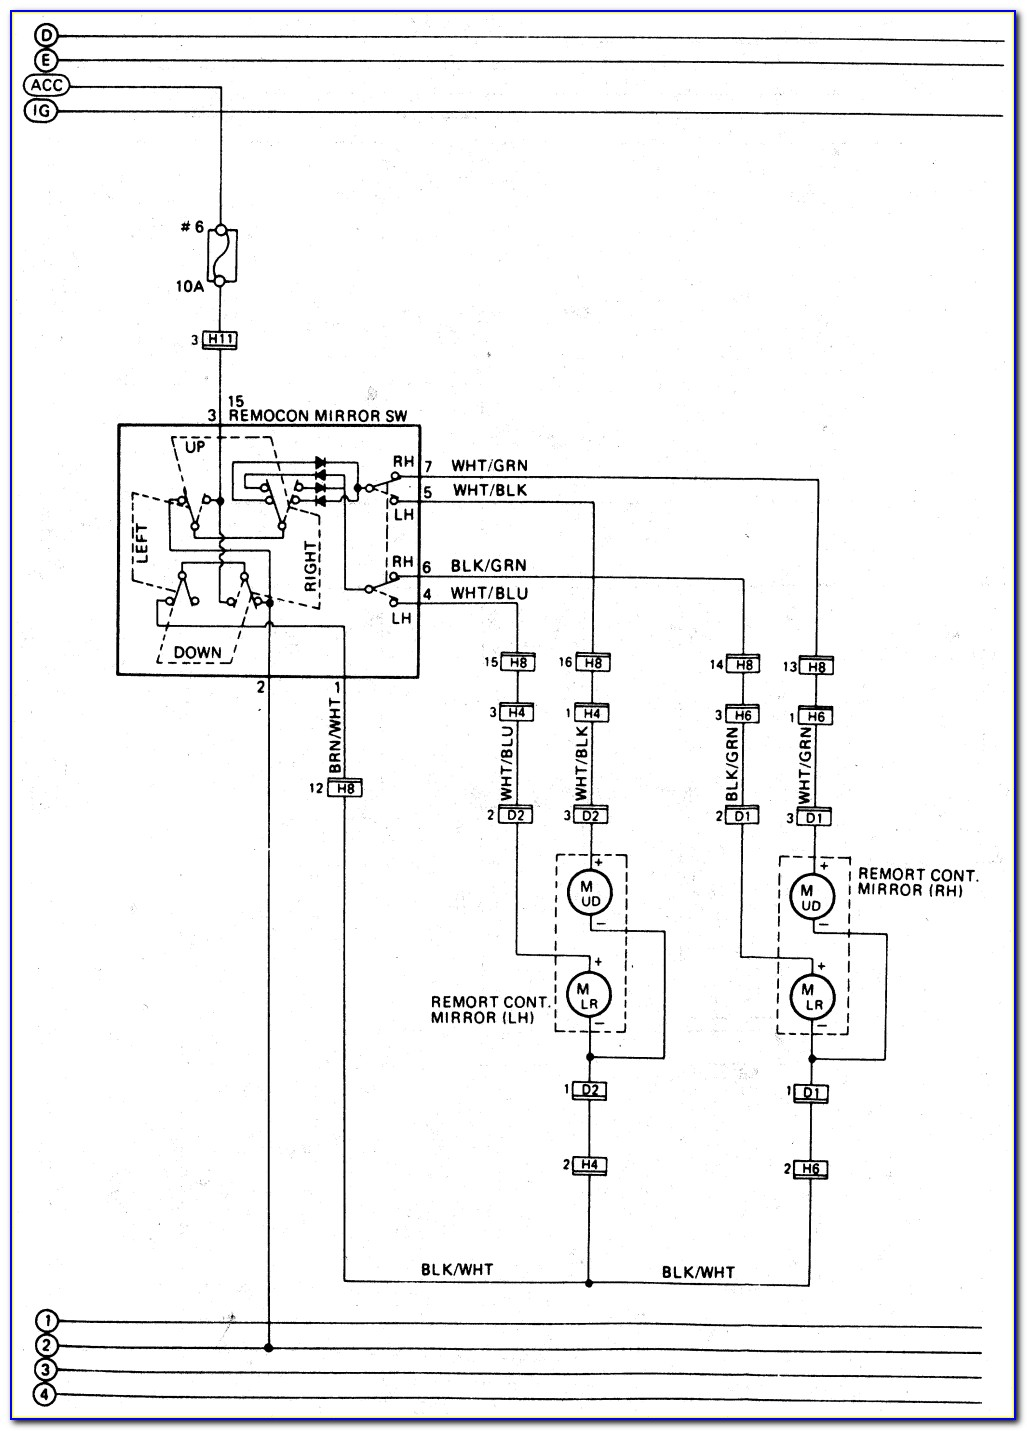 2006 Kenworth T800 Radio Wiring Diagram